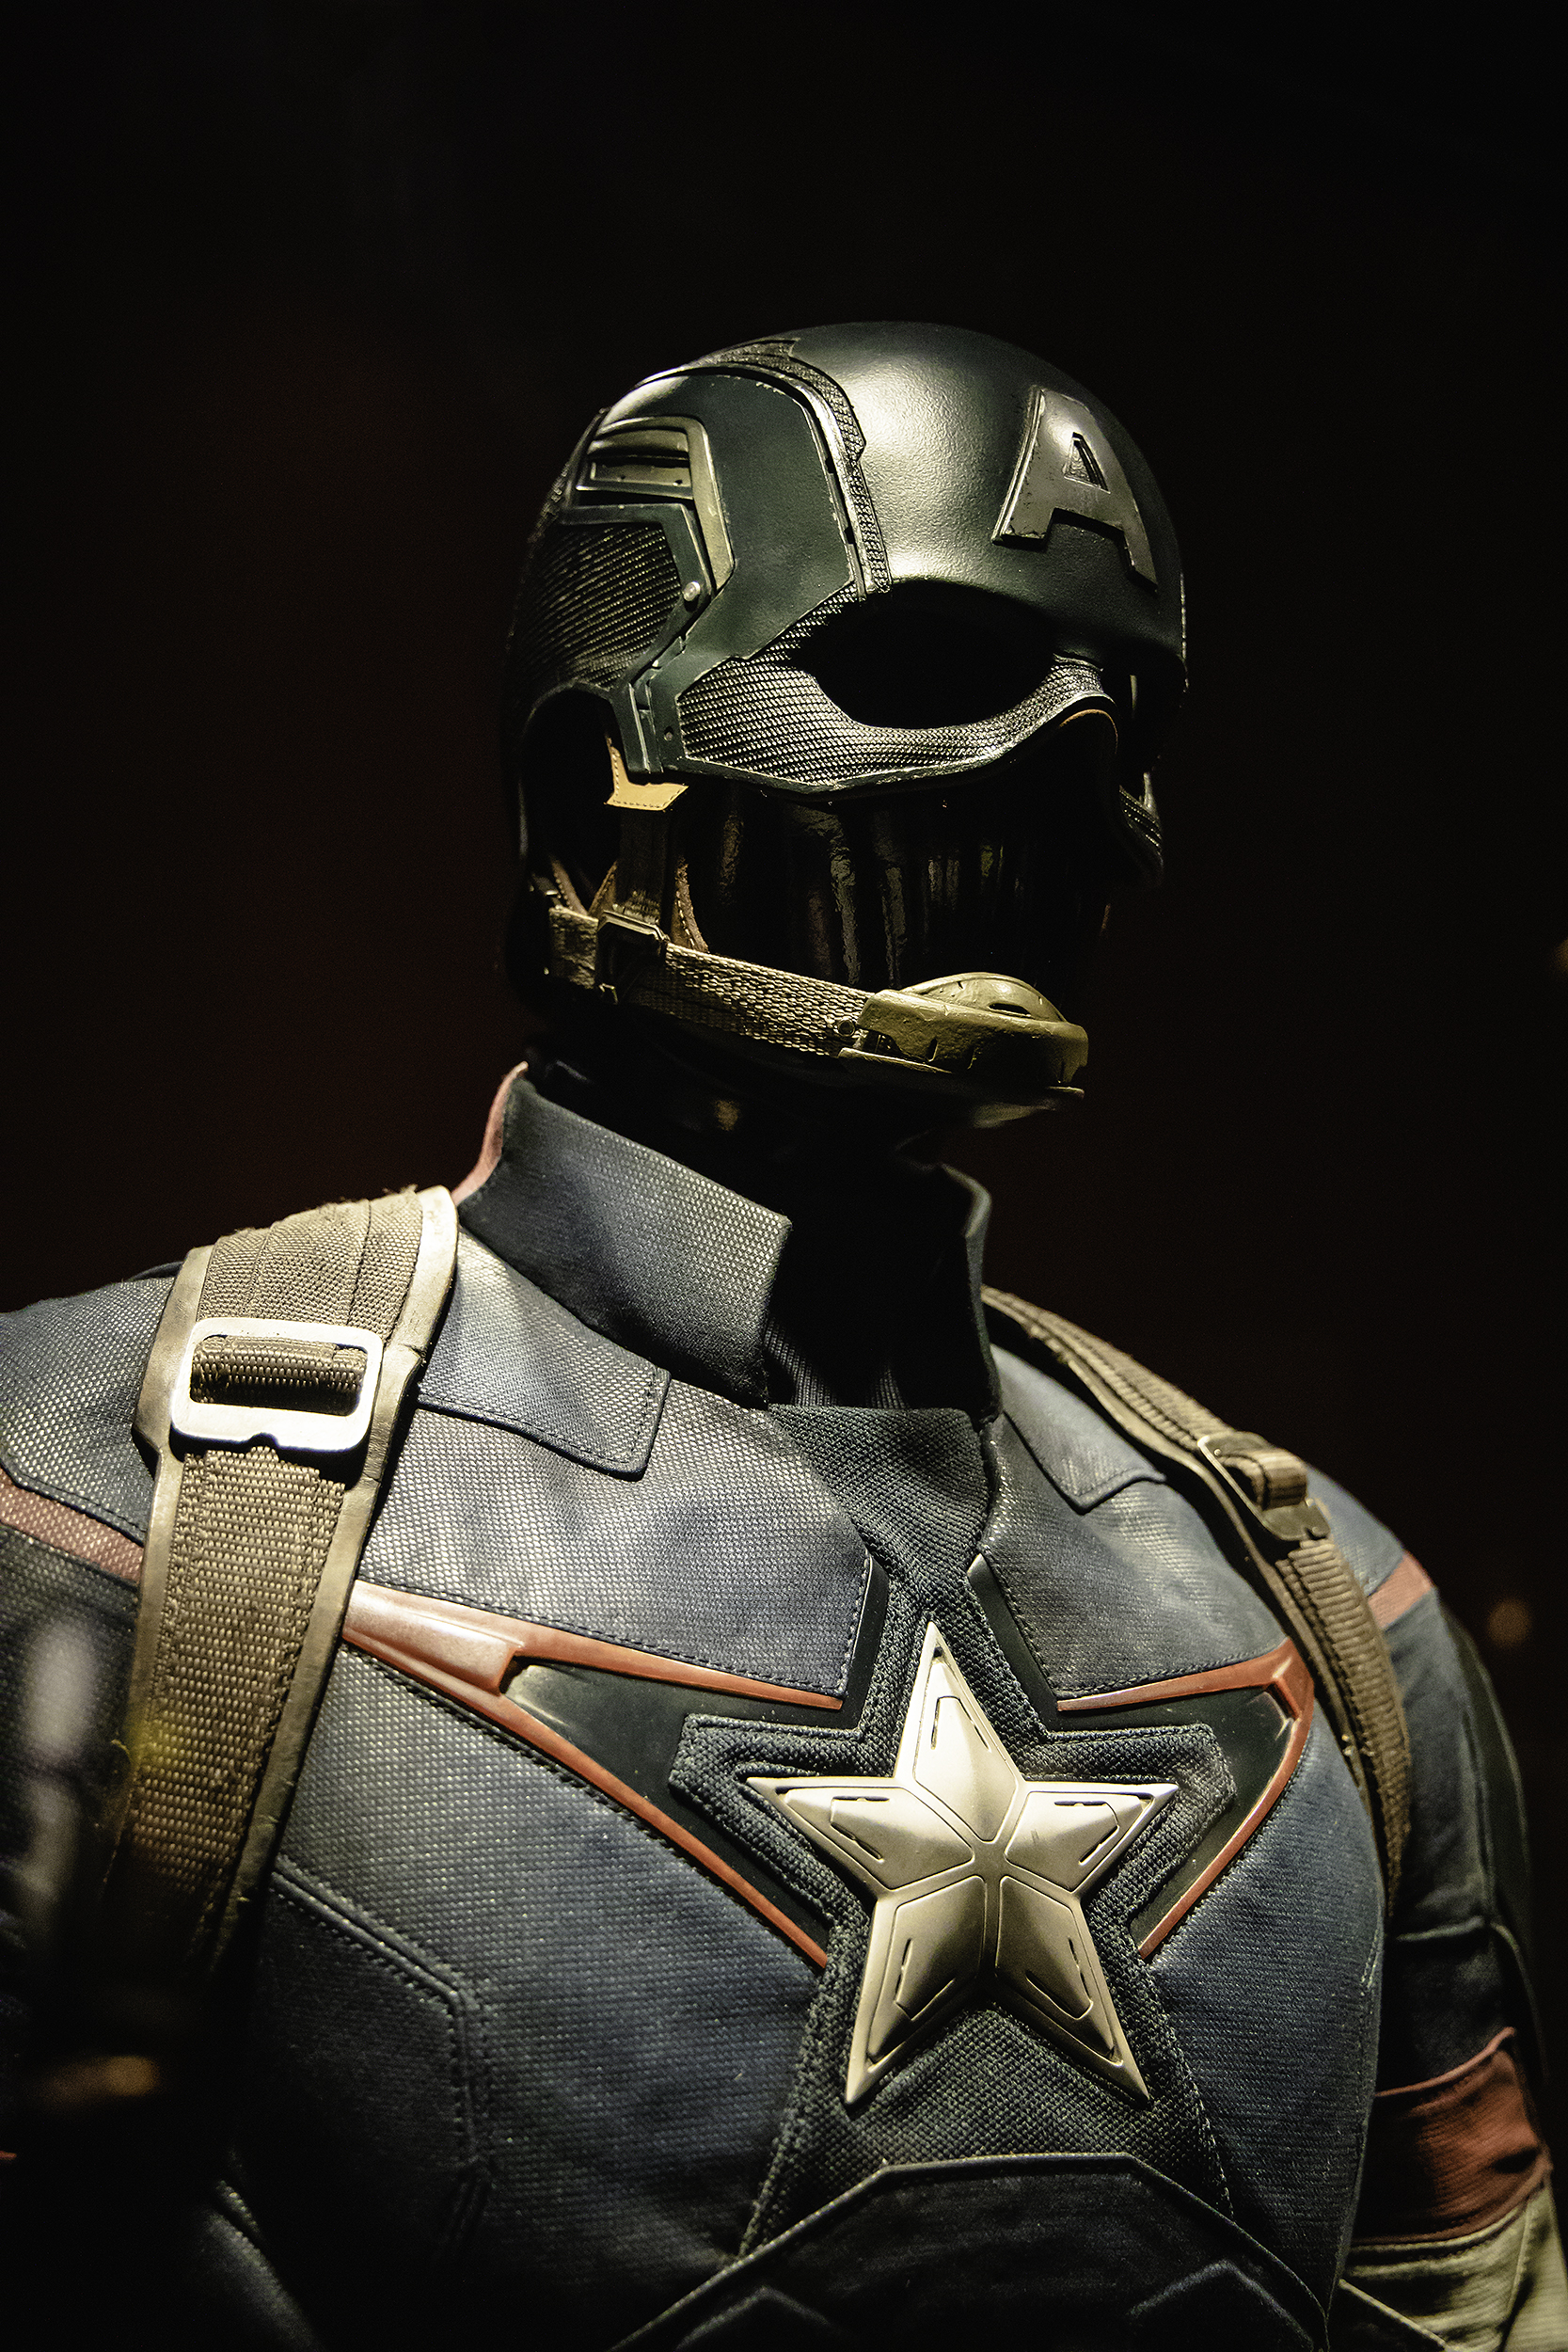 Captain America's Suit